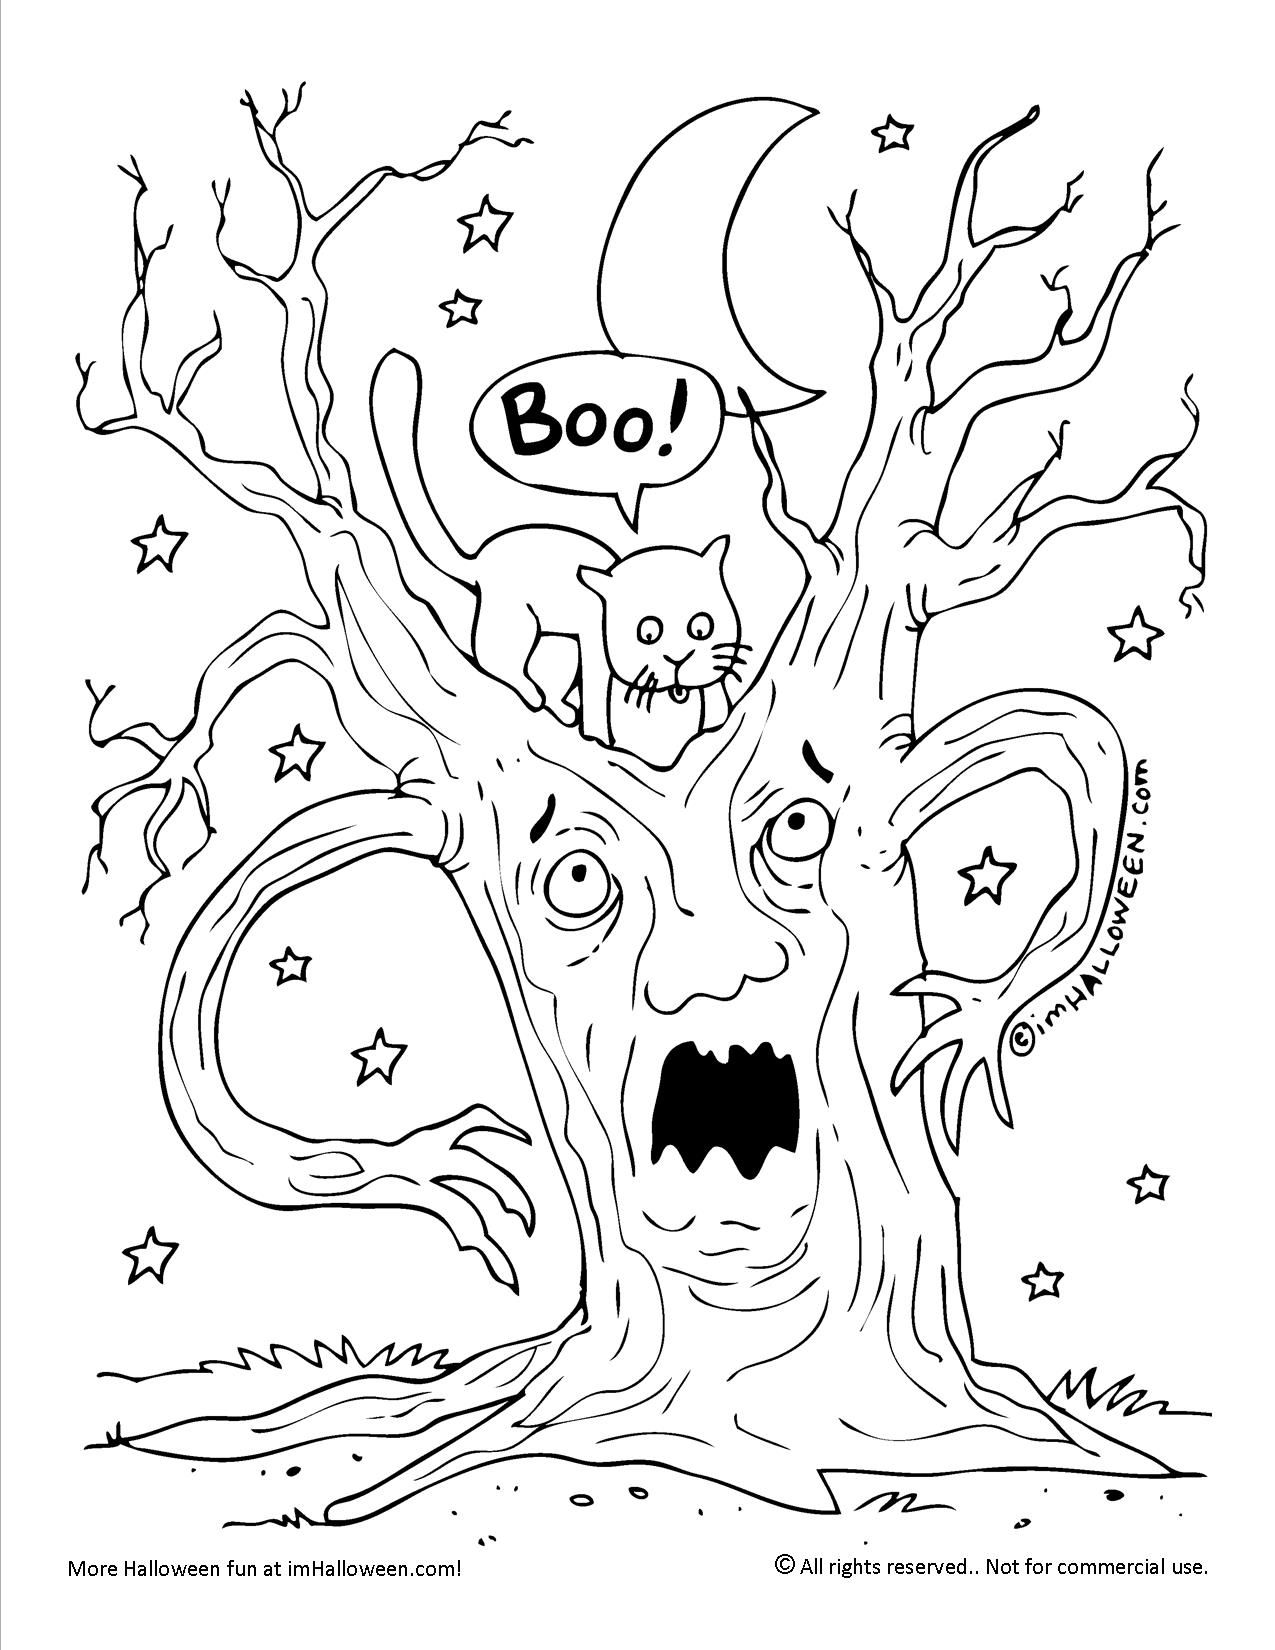 Scary Tree Halloween Coloring Page Halloween Coloring Pages Tree Coloring Page Halloween Coloring